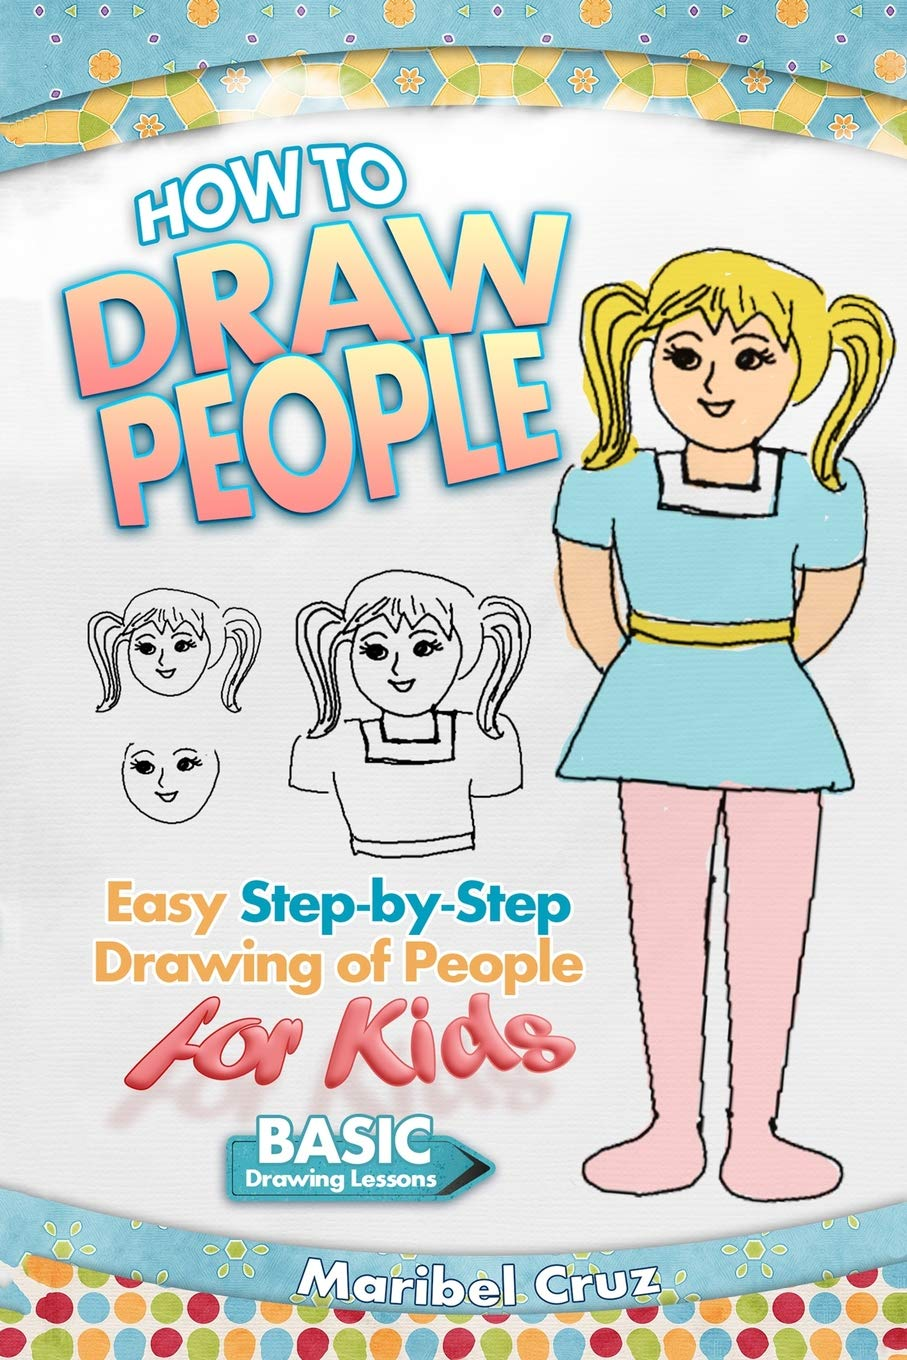 How to draw people easy step by step drawing of people for kids paperback jul 17 2017